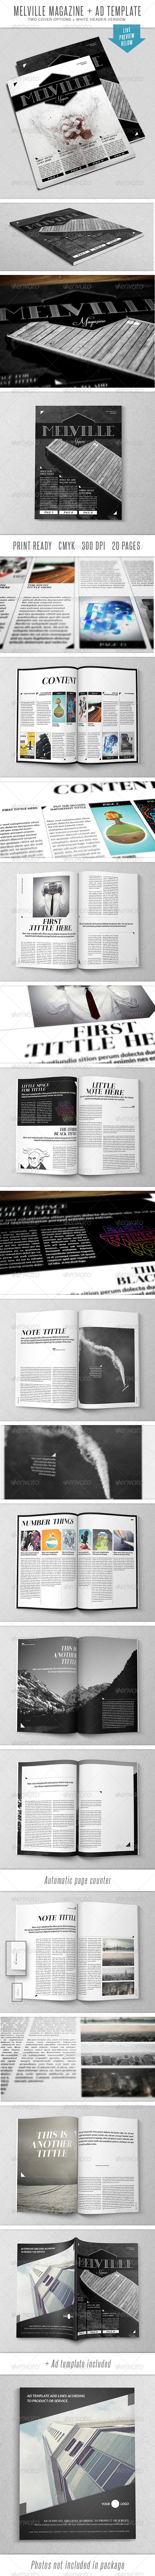 Melville InDesign Mgz Template - Magazines Print Templates